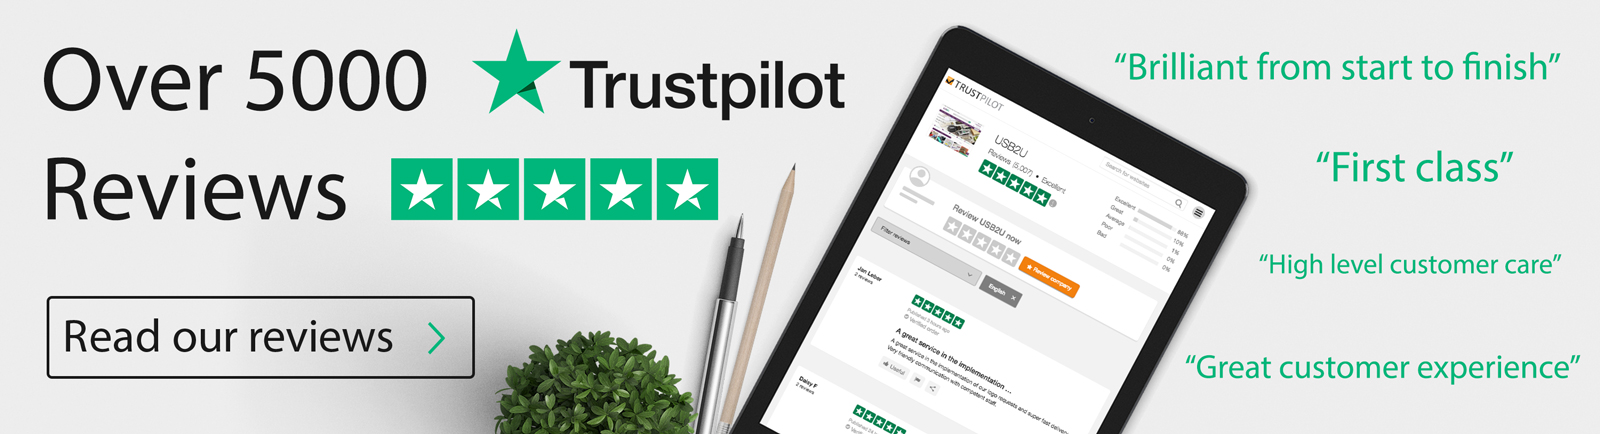 read USB2U reviews on trustpilot rated 5 stars